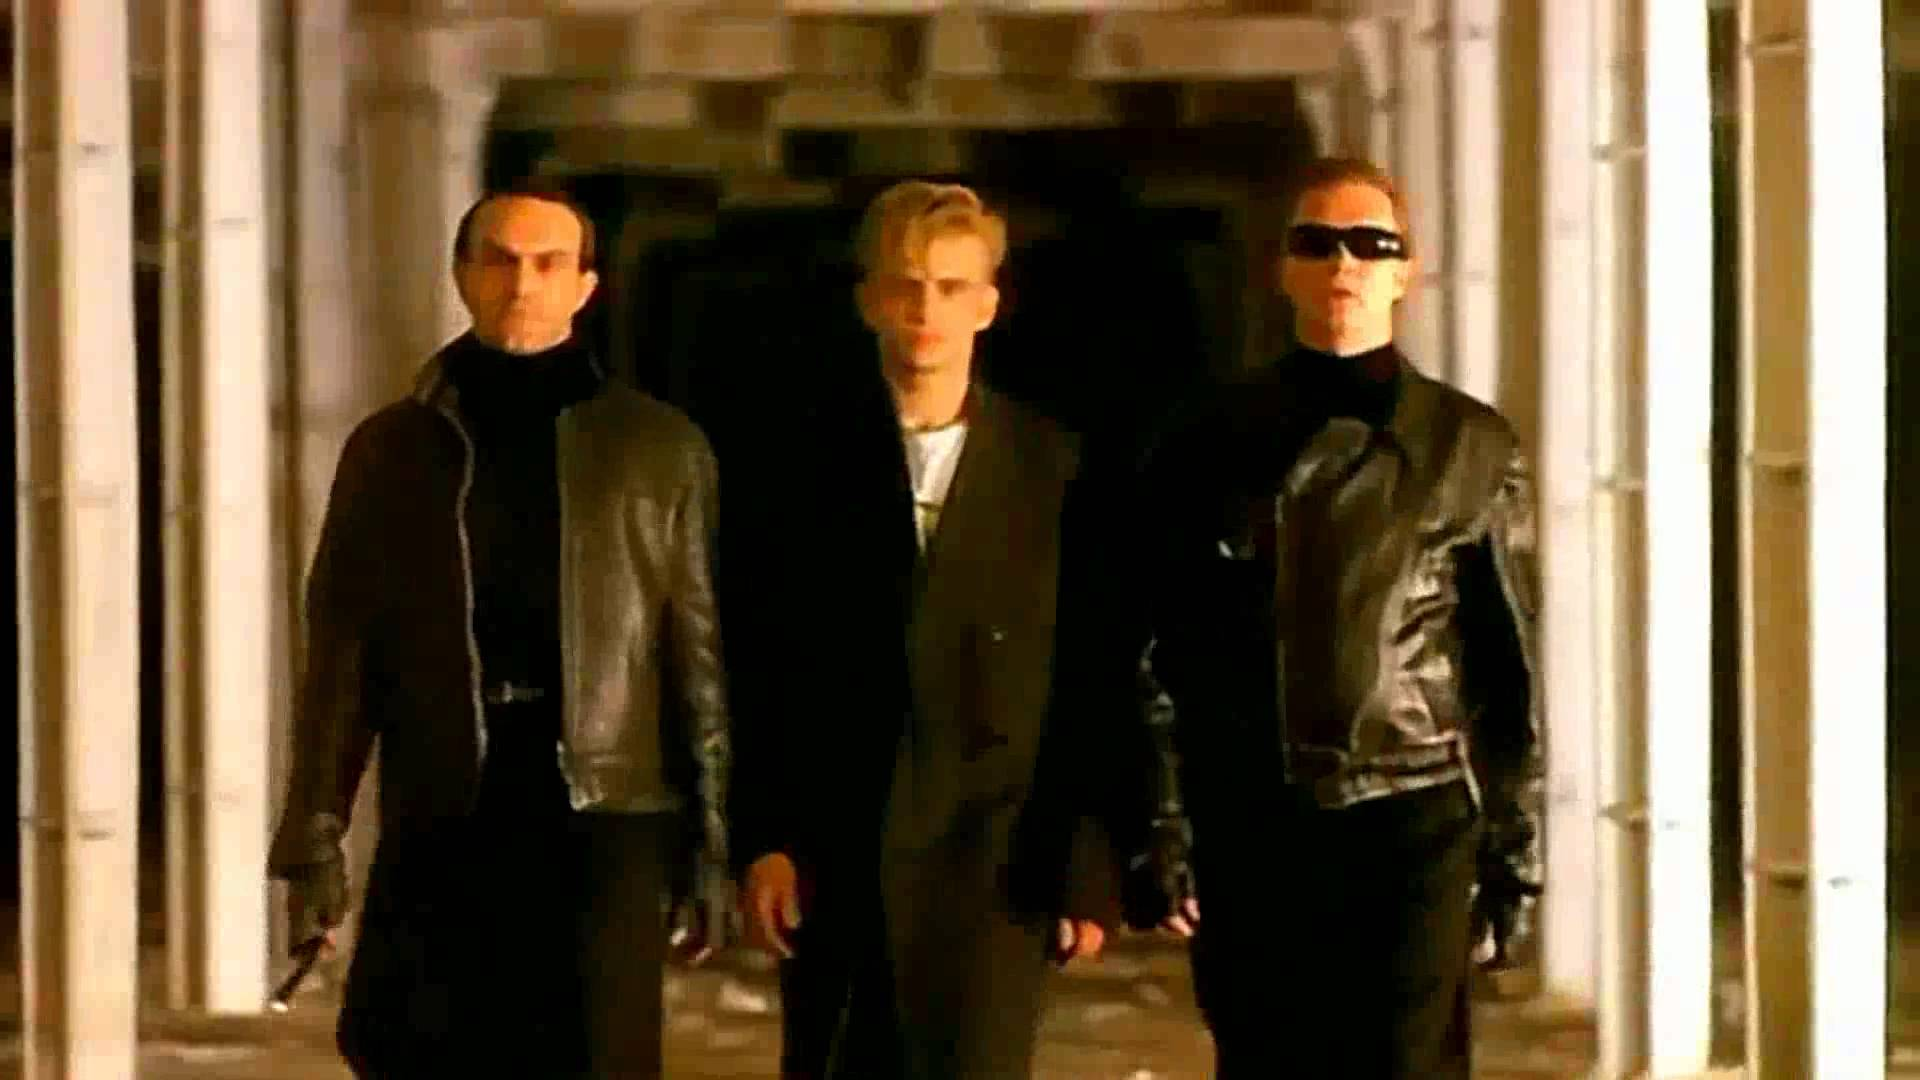 Gas-Tube: The Communards – Don't leave me this way